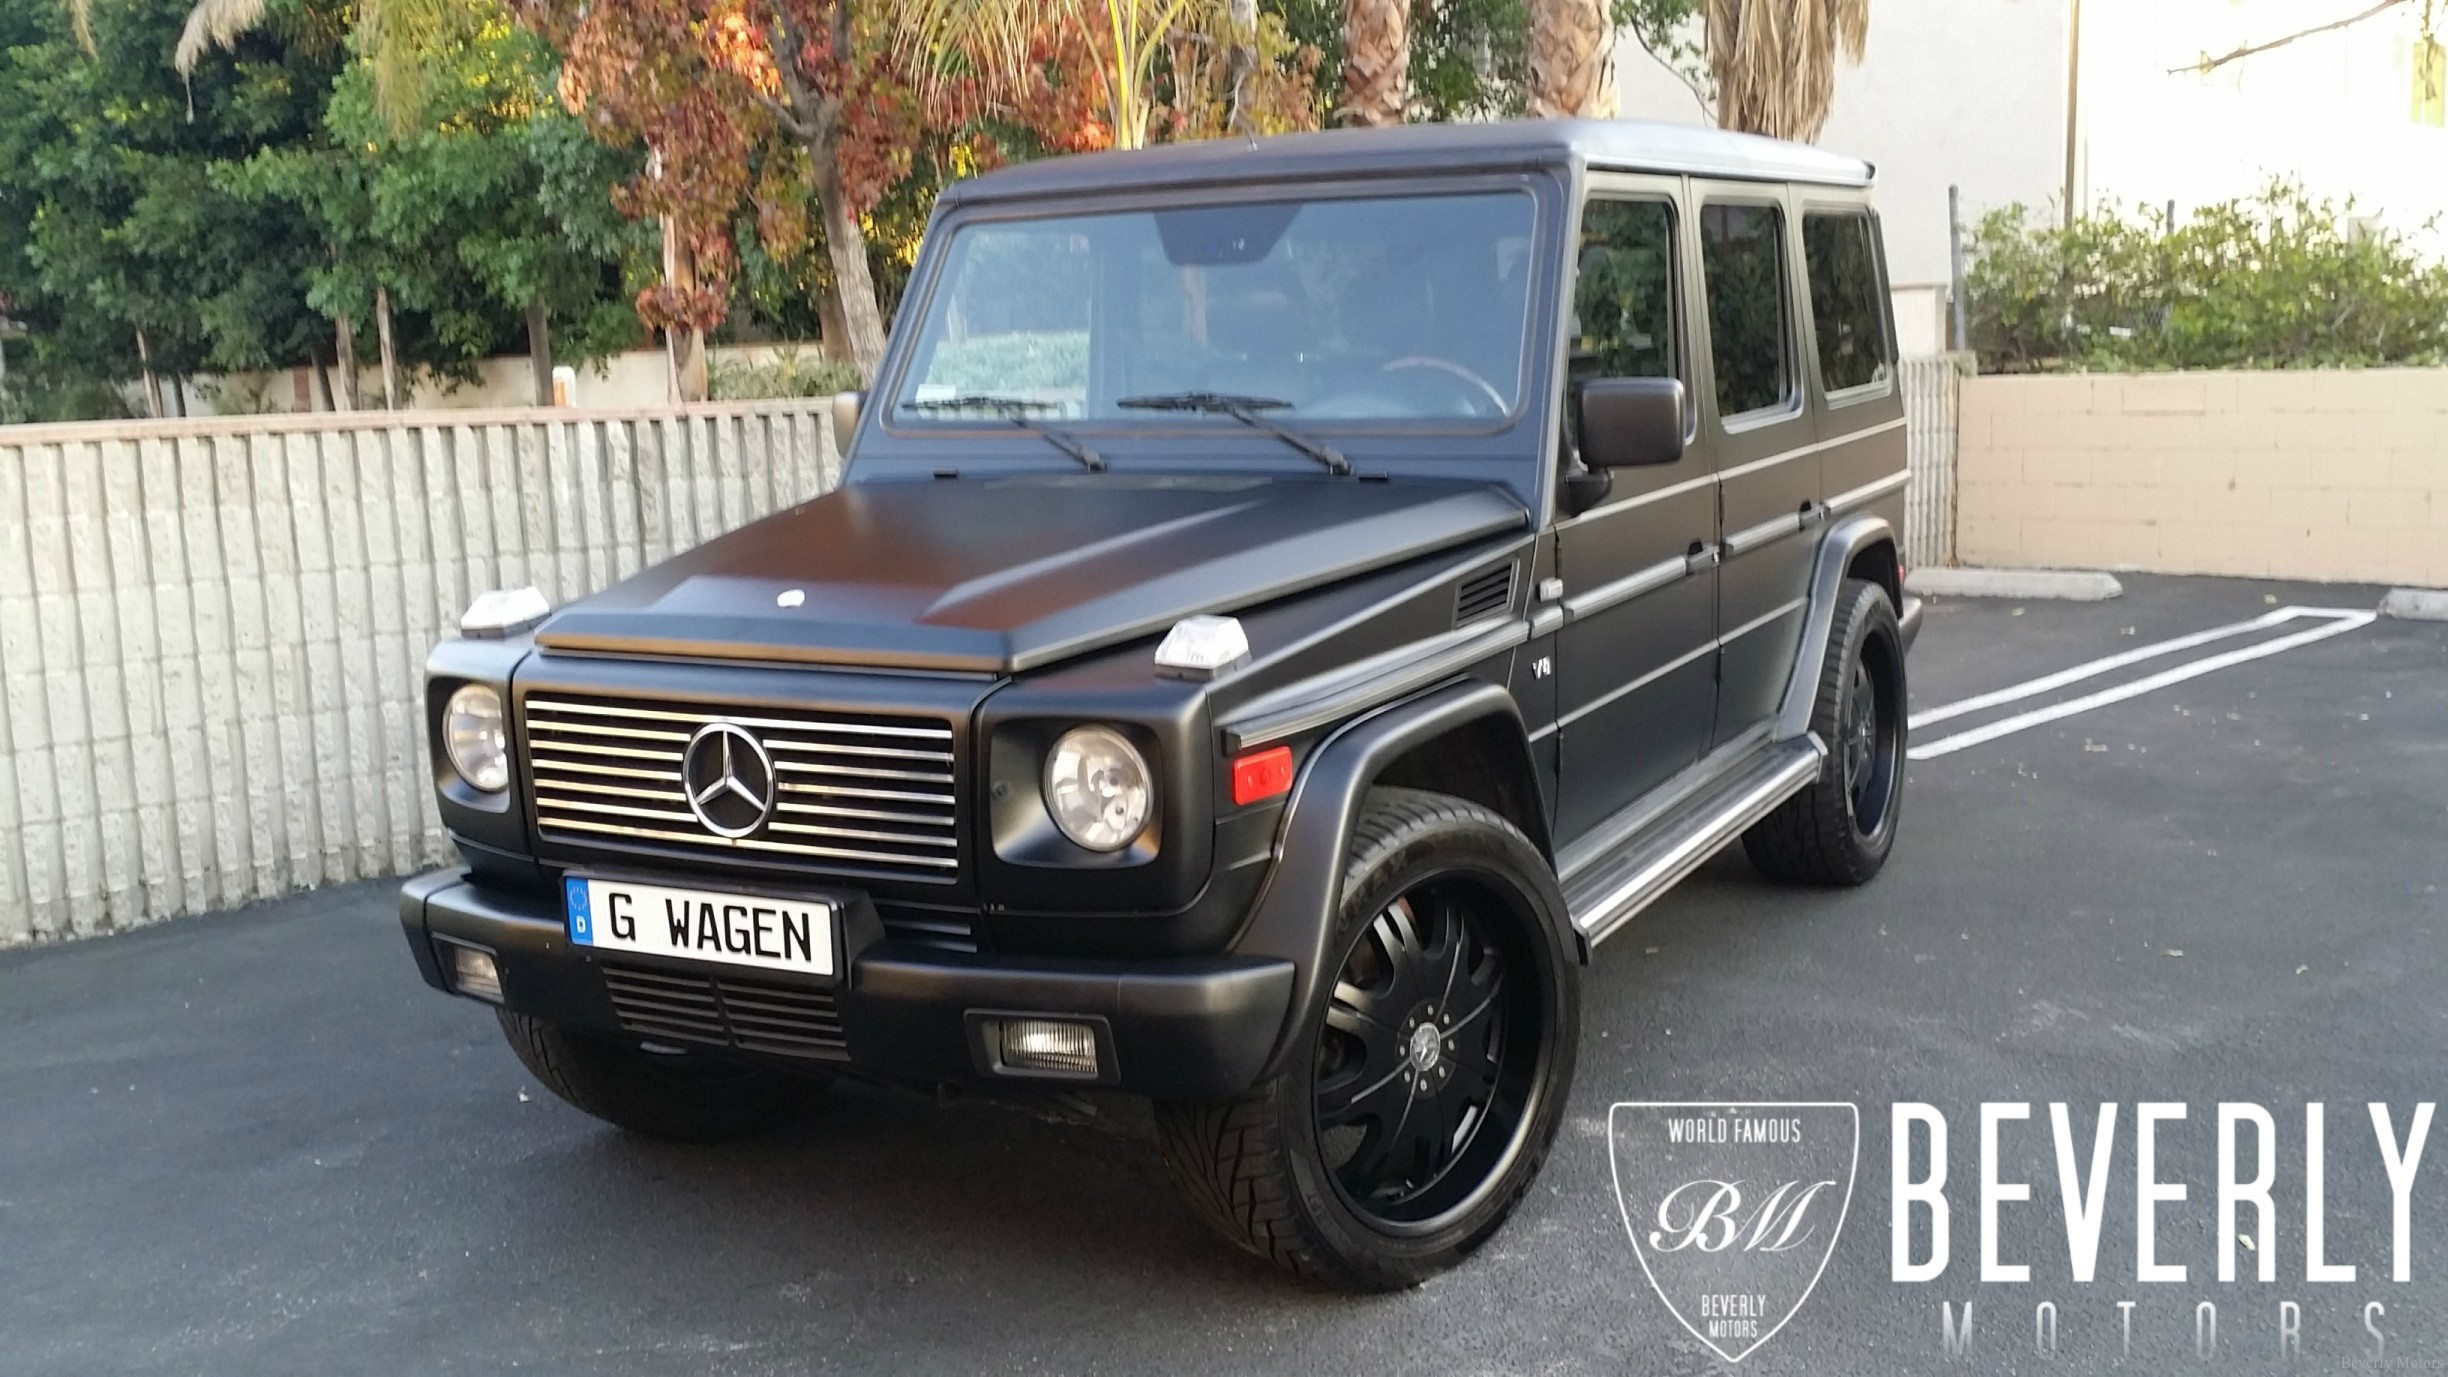 2002 mercedes benz g500 for sale by beverly motors inc for 2002 mercedes benz g class